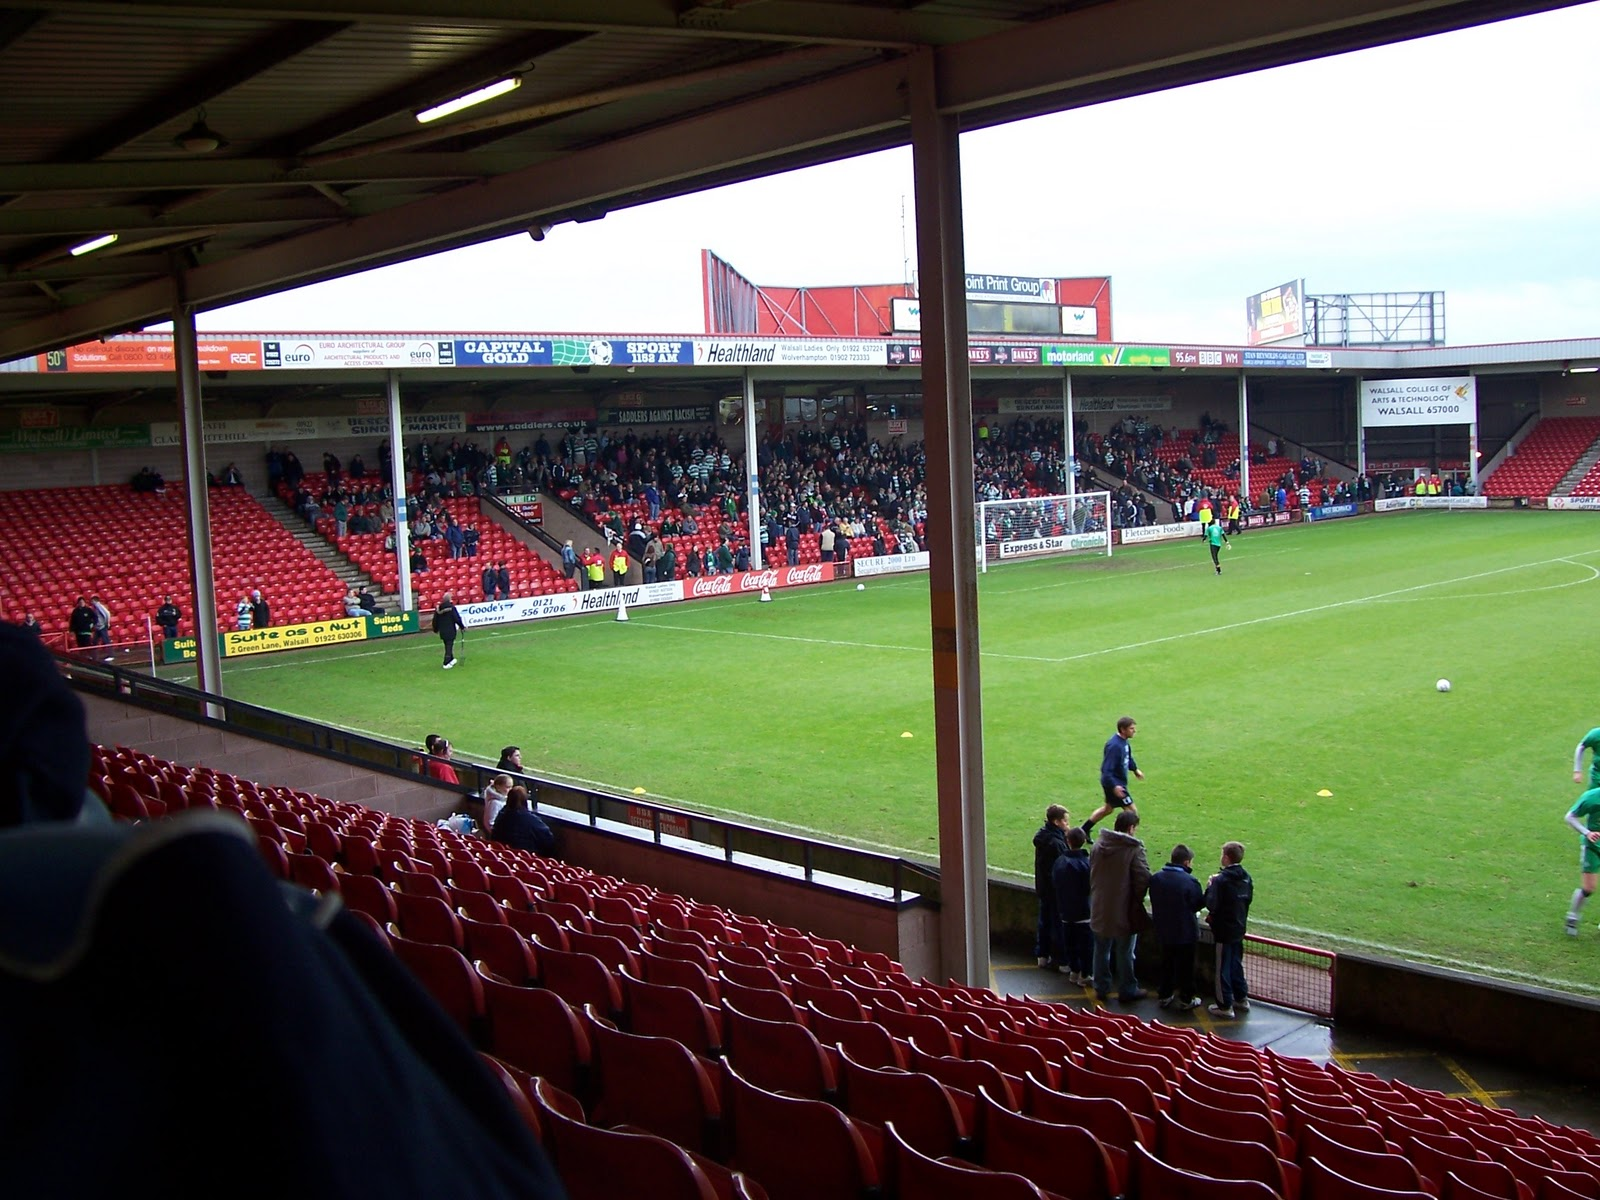 The Wycombe Wanderer Walsall The Bescot Stadium